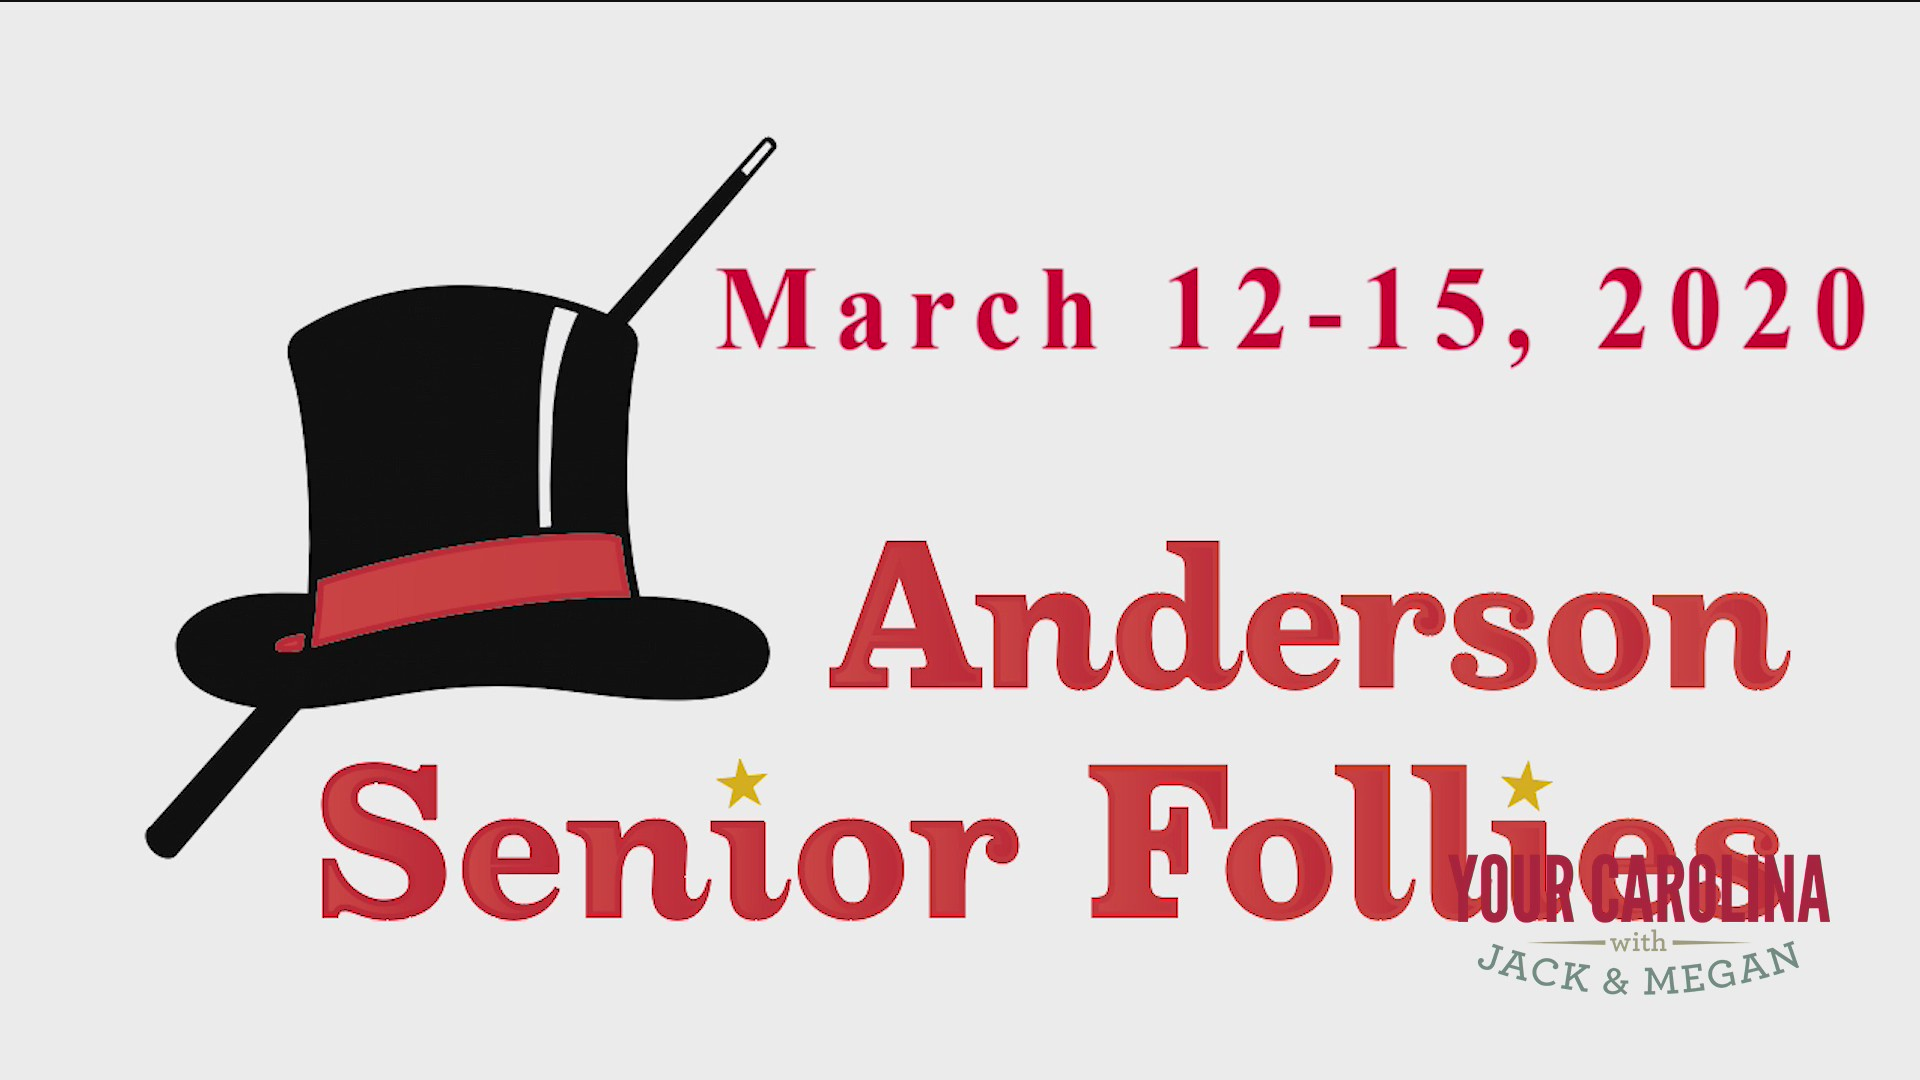 The Anderson Senior Follies Spice of Life Show